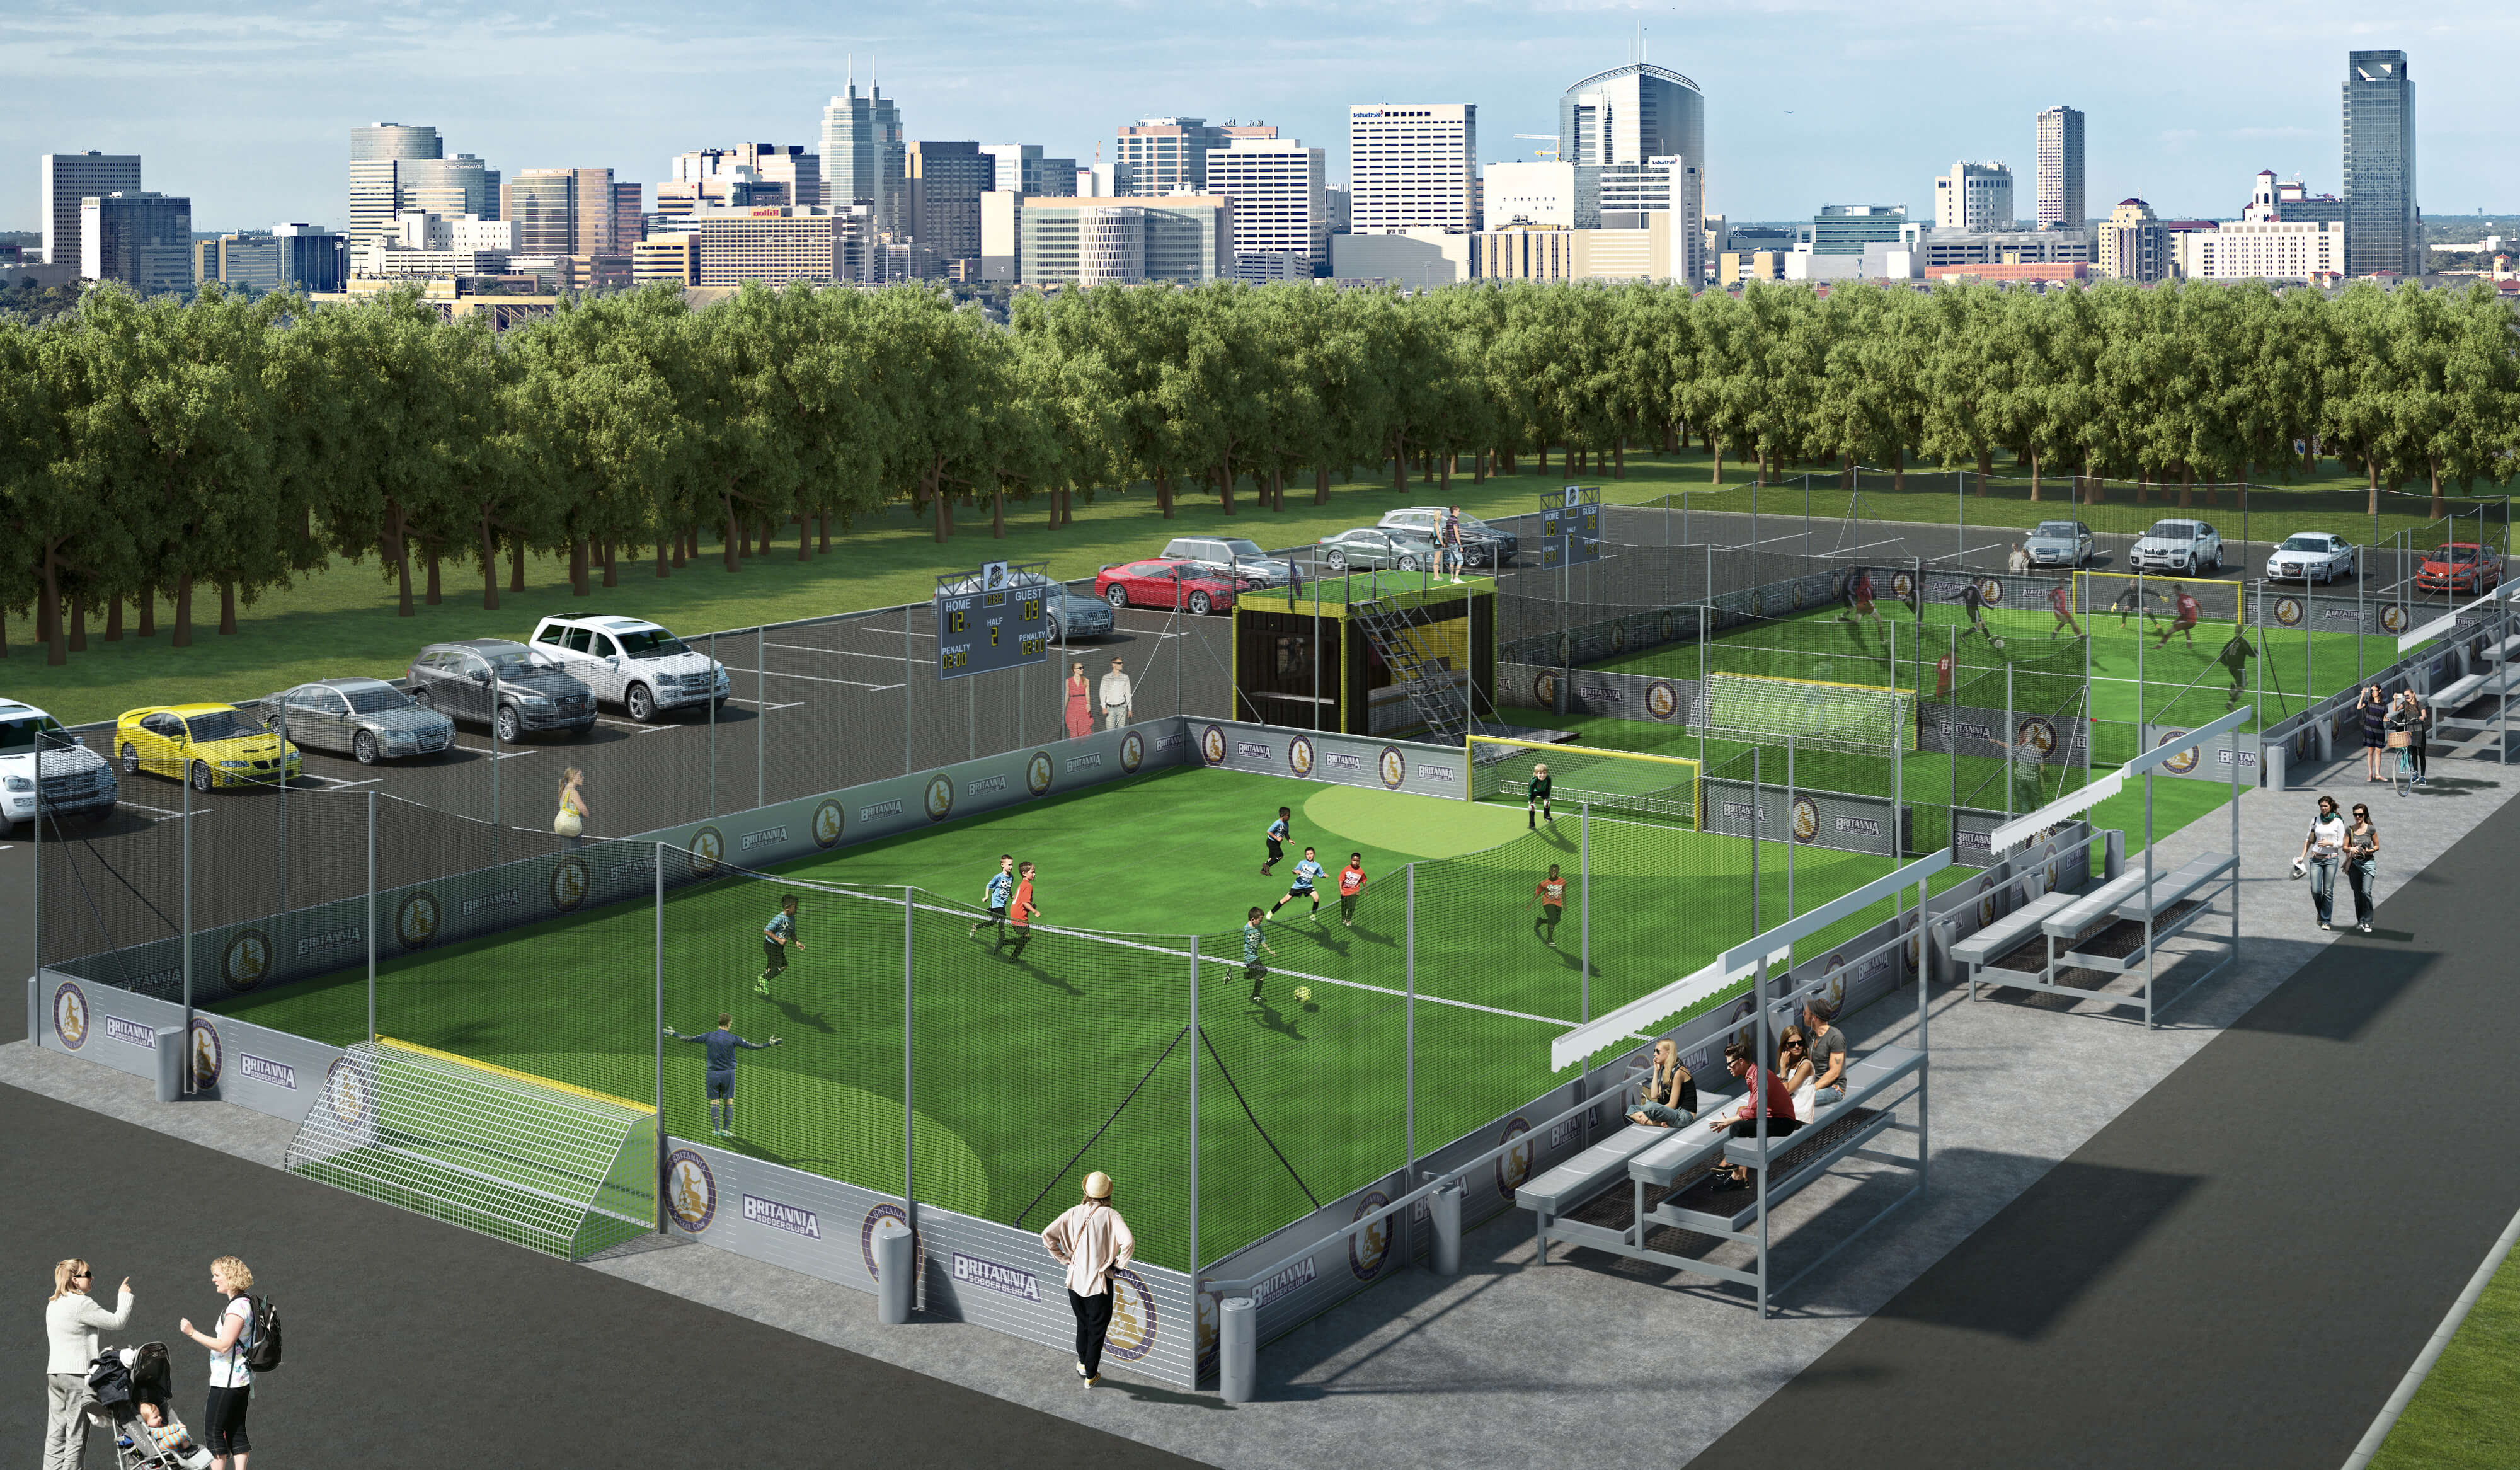 rendering of two soccer fields at a soccer club